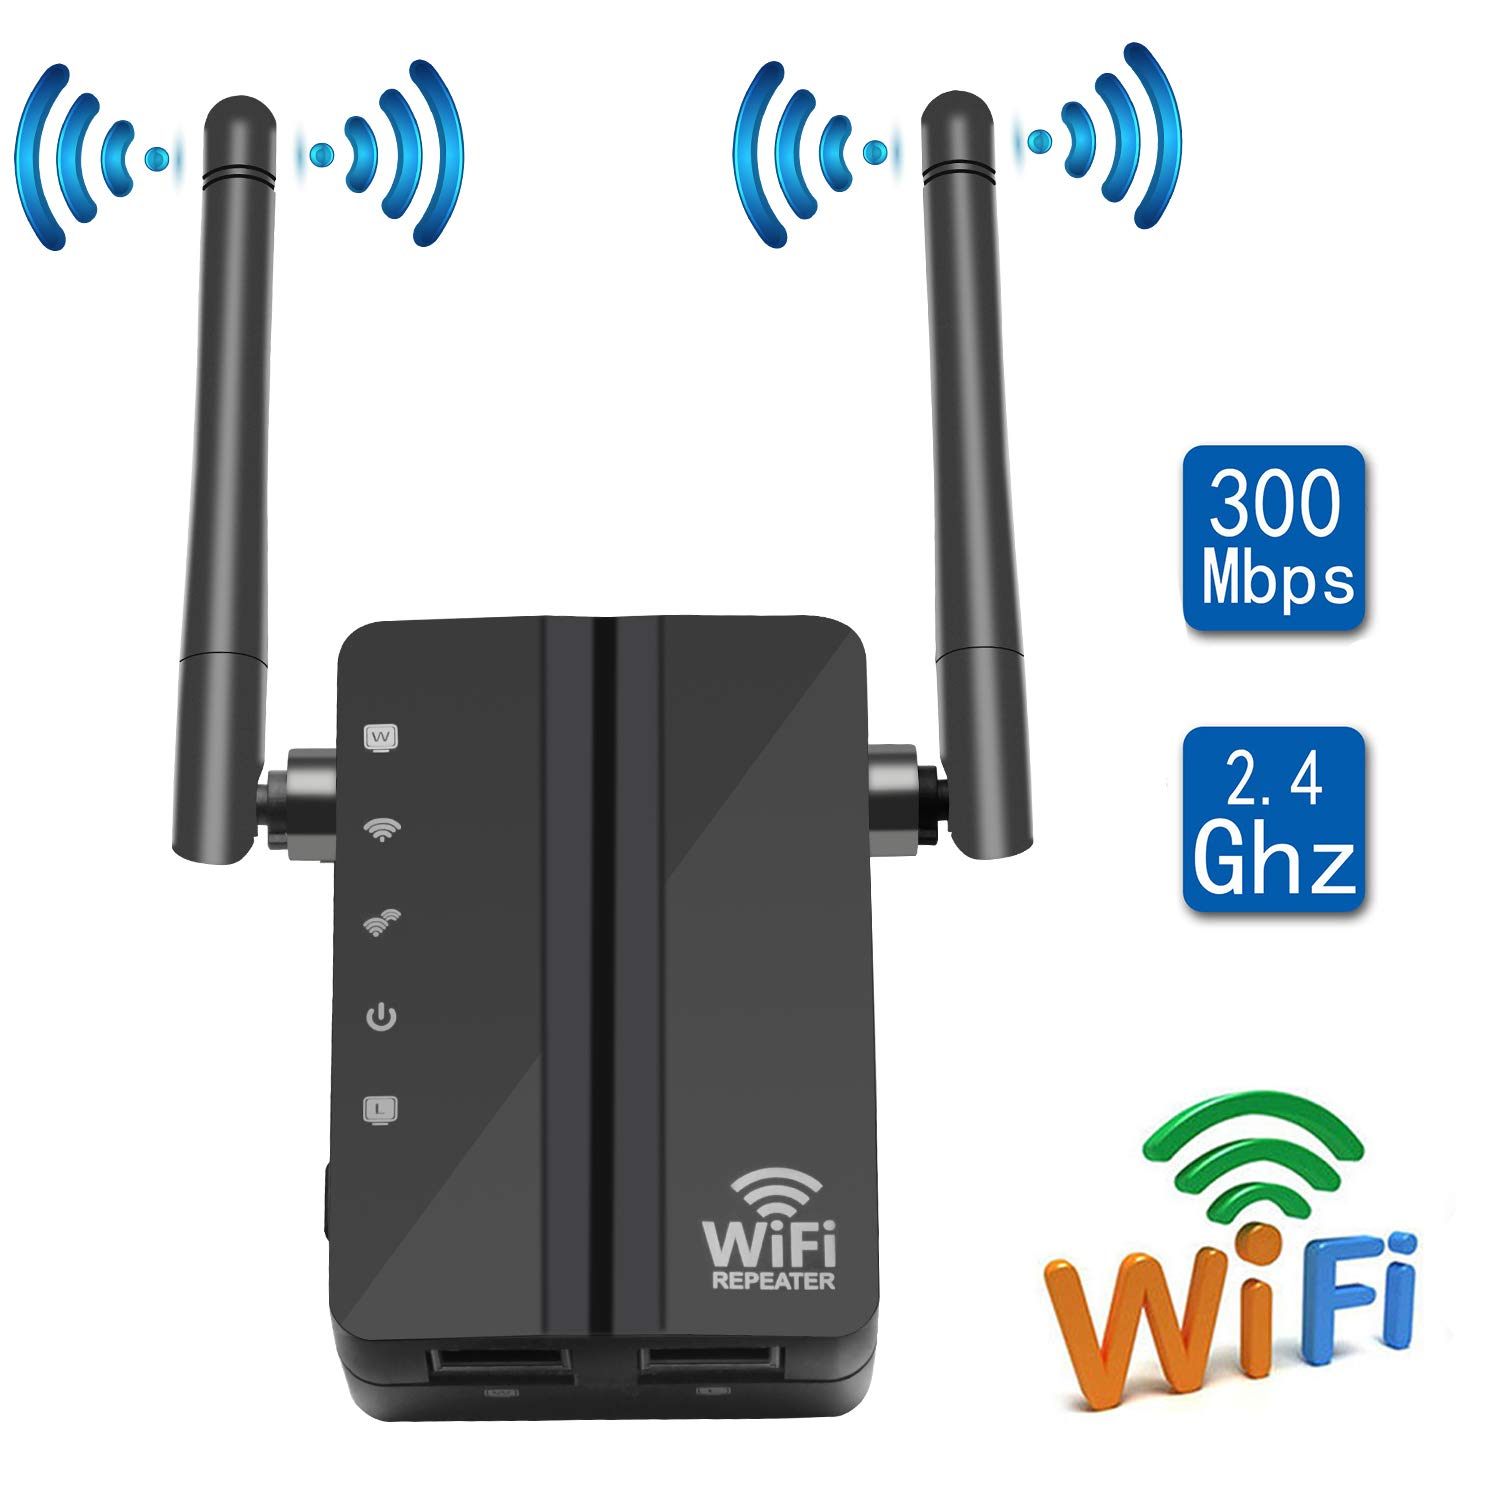 CARANTEE WiFi Range Extender- 300Mbps 1615 sq.ft (40 ft Range) 360 Degree Full Coverage WiFi Repeater, with Dual External Antennas Complies 802.11b/g/n Simple Operation WiFi Extender